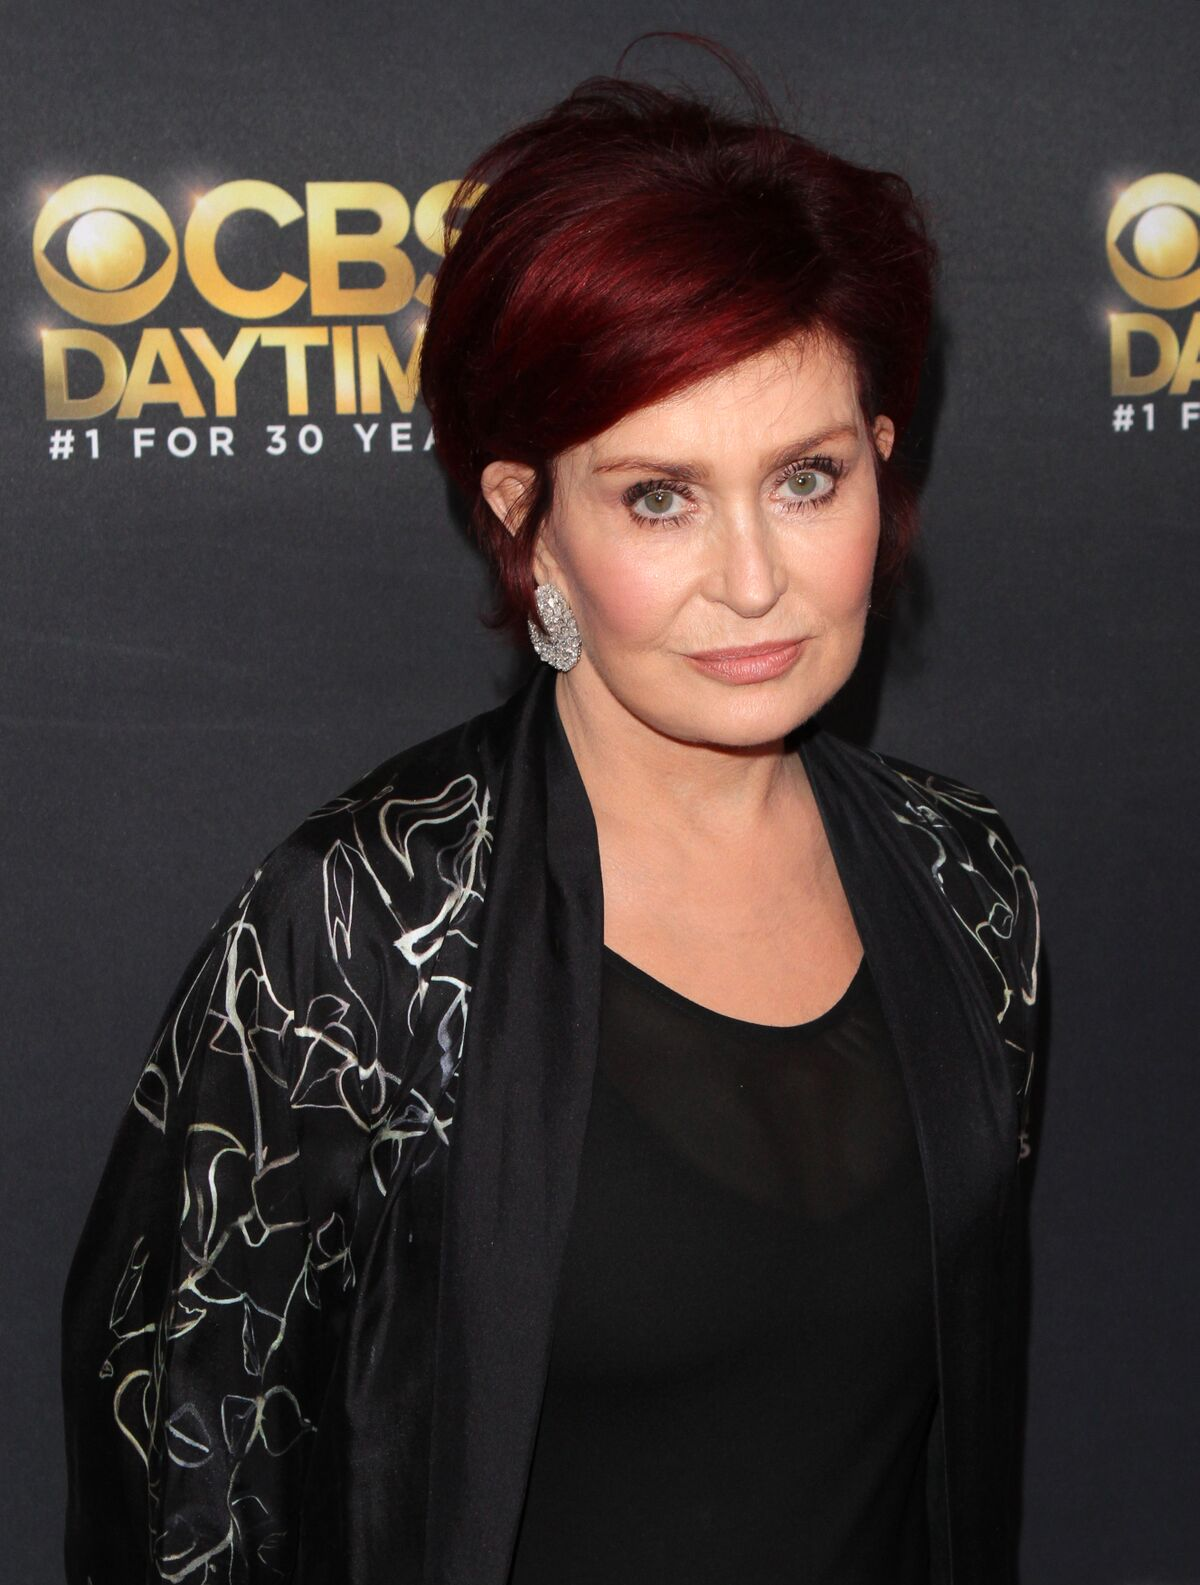 TV personality Sharon Osbourne attends the CBS Daytime Emmy after party at Pasadena Civic Auditorium on April 30, 2017 in Pasadena, California | Photo: Getty Images